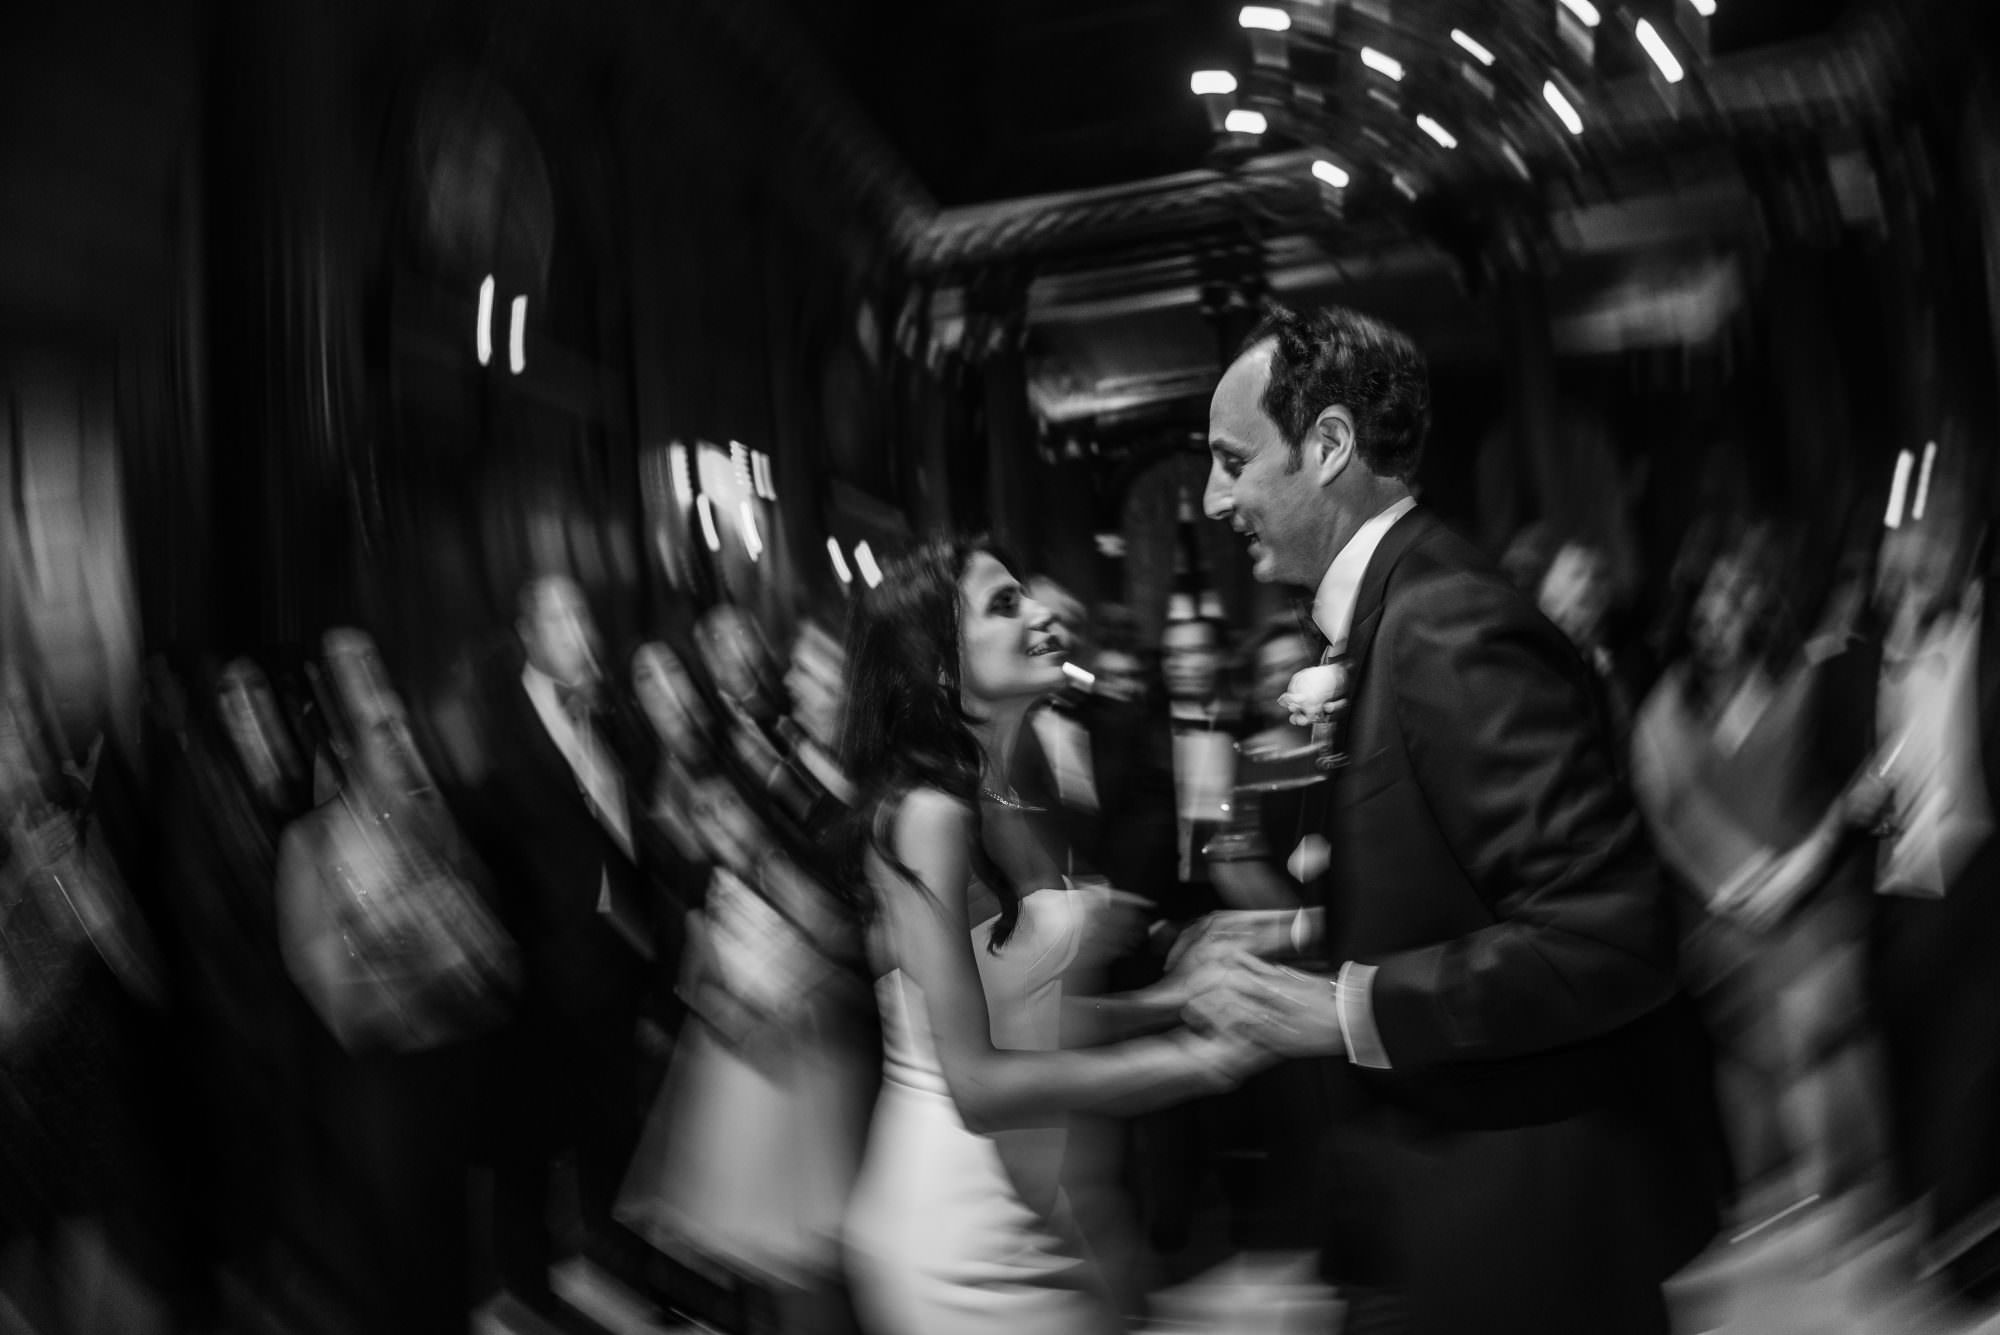 new york city artistic beautiful art wedding photography photographer photo groom bride emotional reception grand entrance jewish parents celebrating mazel tov first dance black and white bw